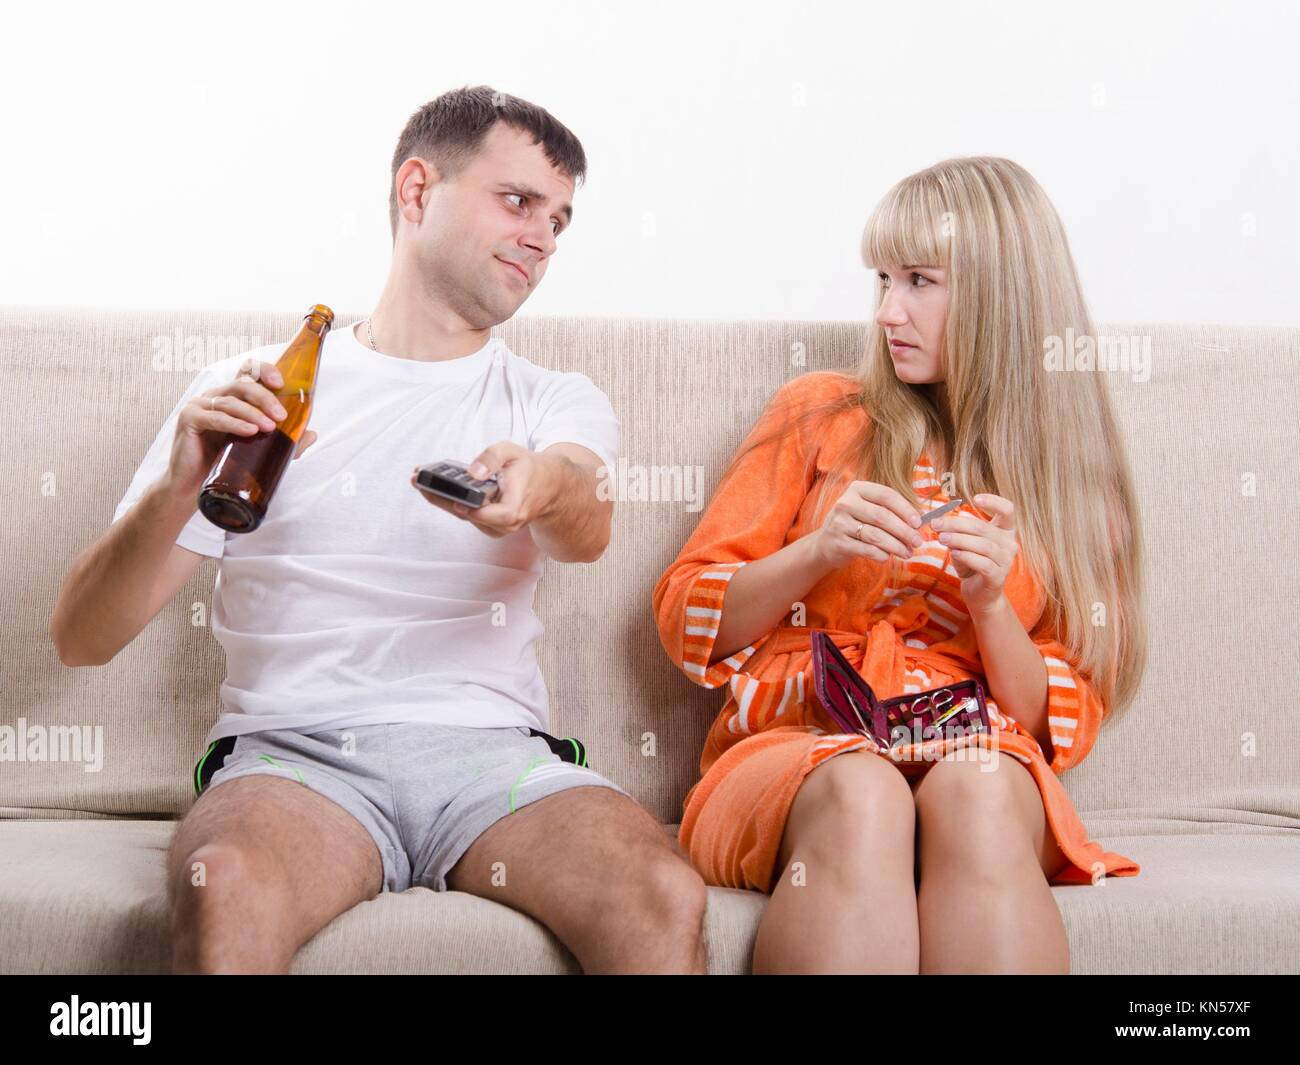 Couple sits on the couch. He is watching the TV, switch the channels with the remote, drinking beer, and grins, - Stock Image